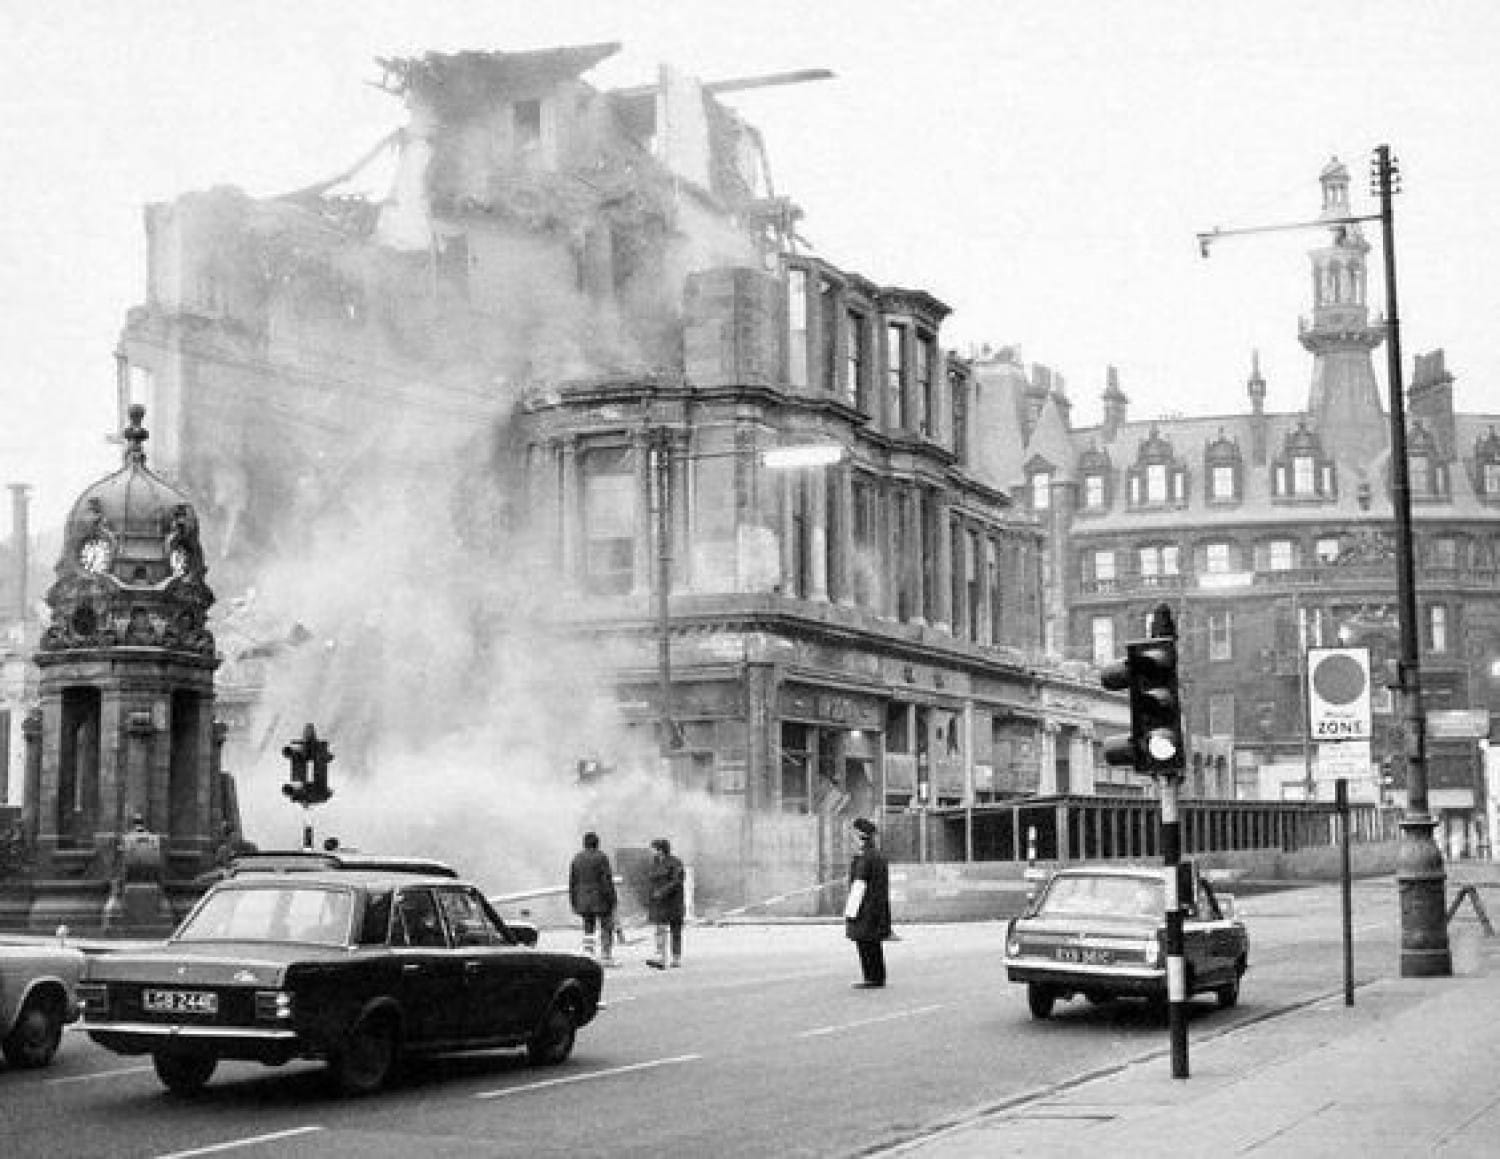 Ashes to ashes, dust to dust - the hotel's demolition, in 1969